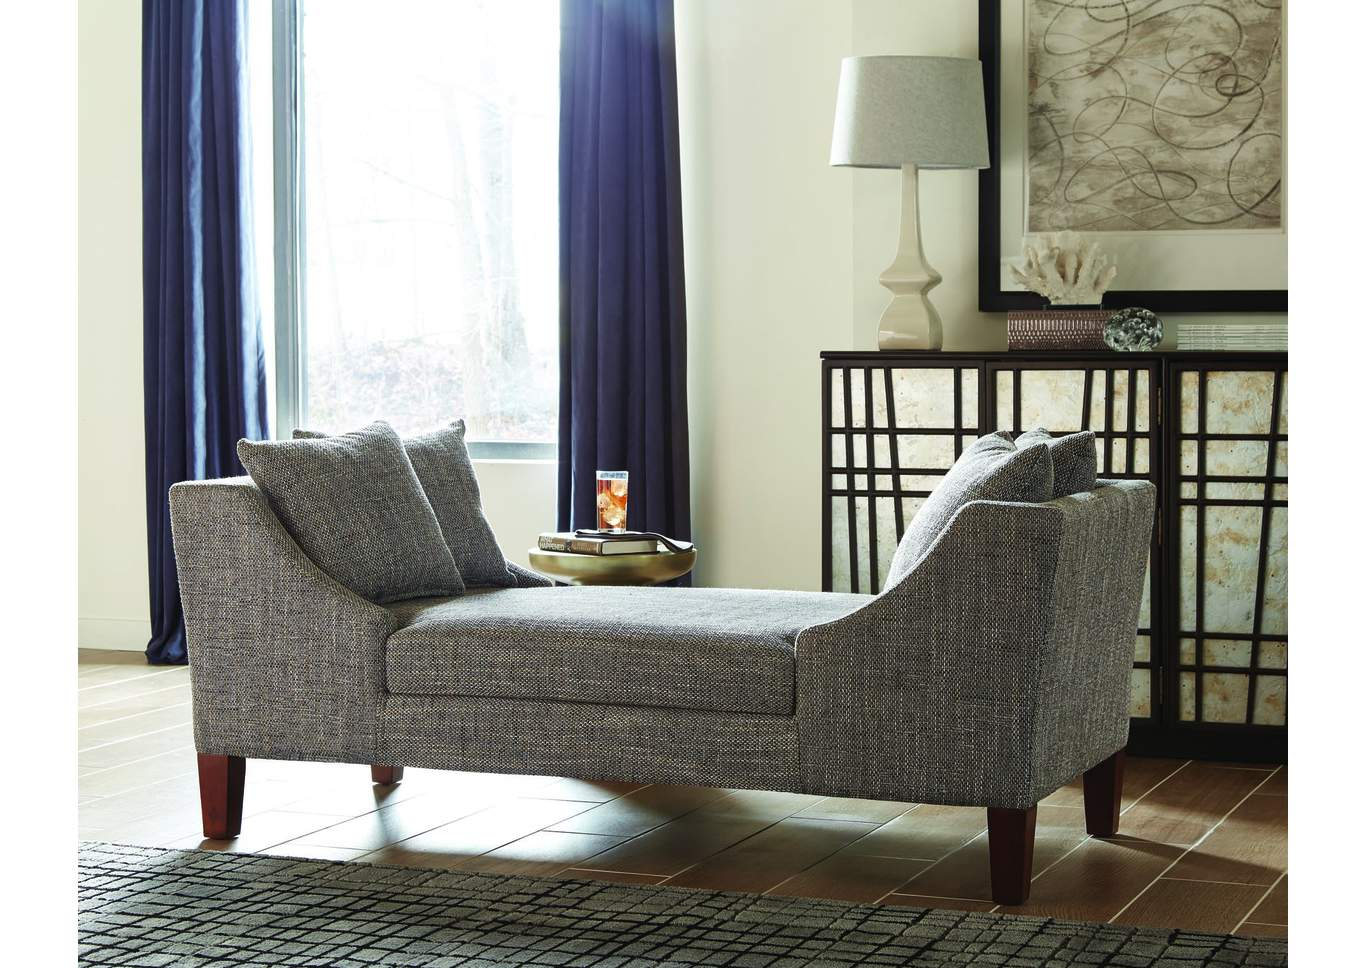 Dilleston White Chaise,Coaster Furniture